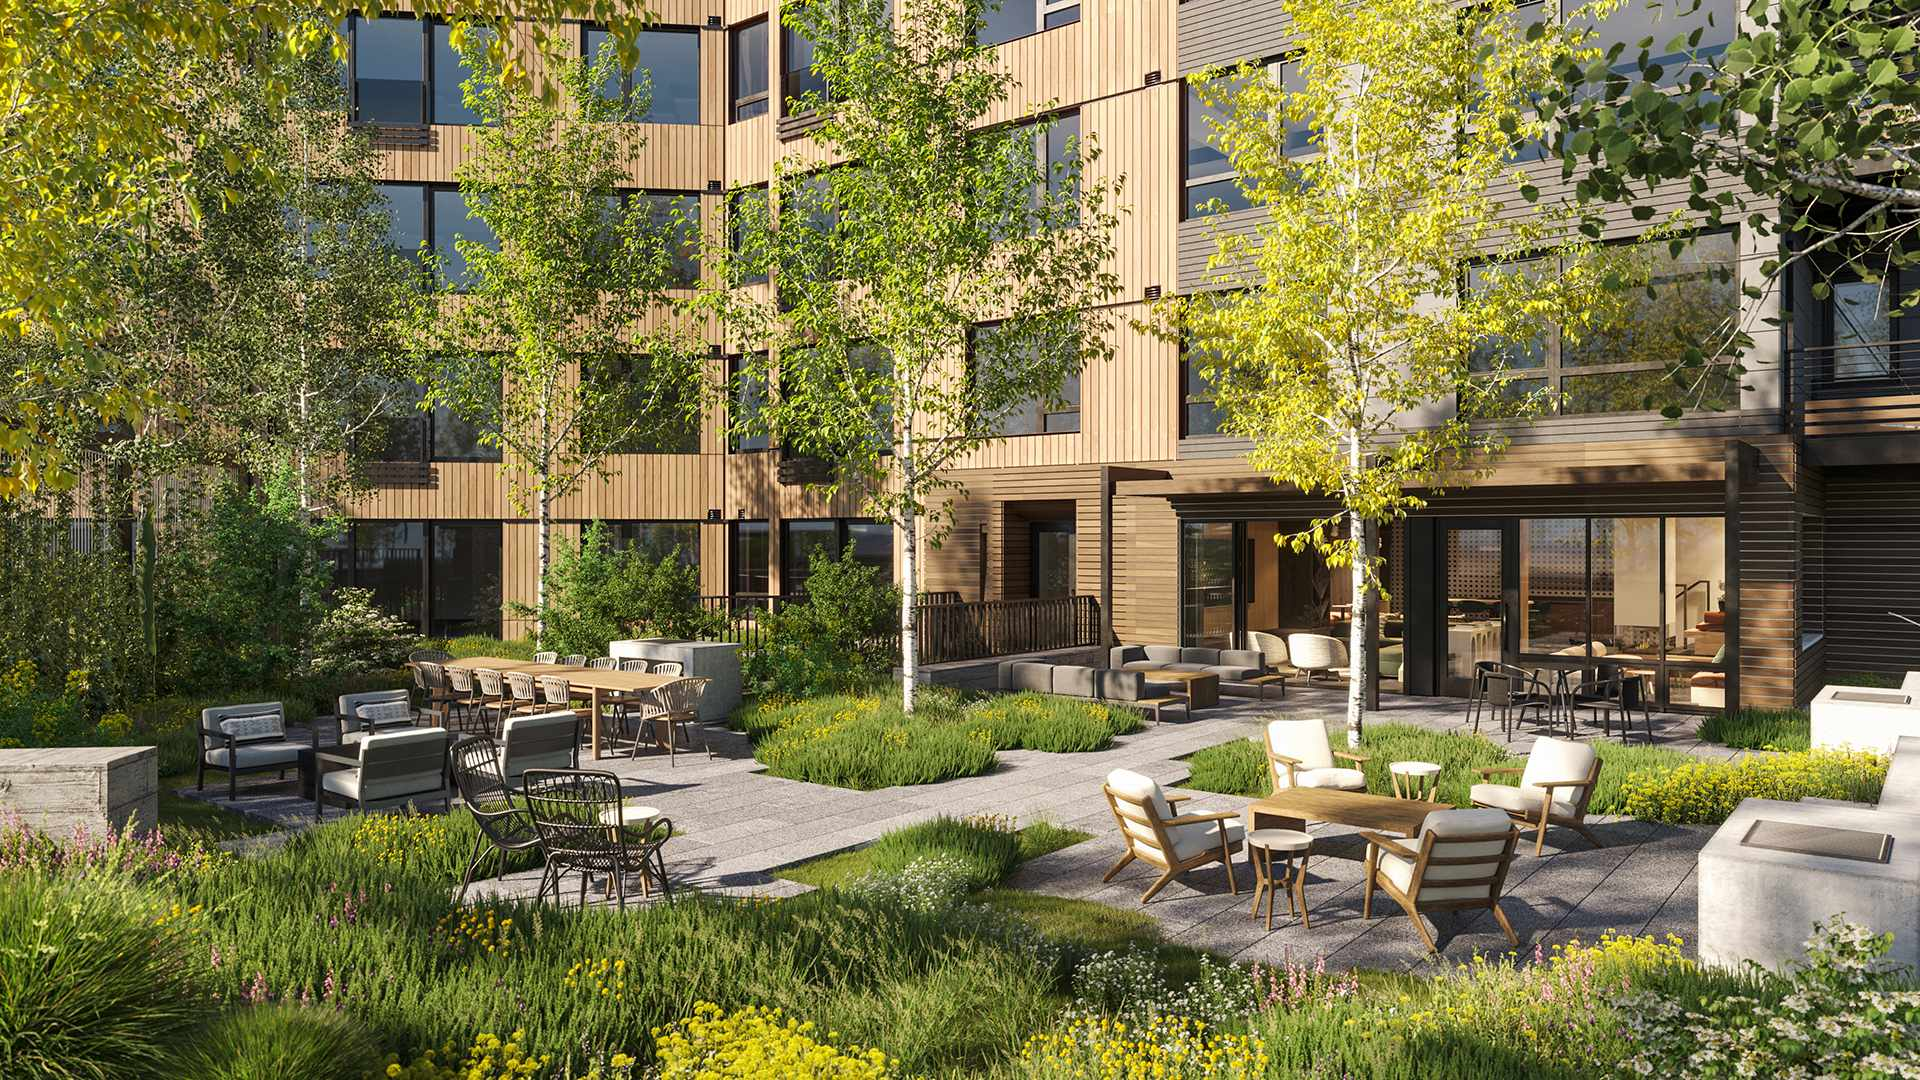 Courtyard - Step out of the Electric Lounge into the Courtyard, a private outdoor space for owners to relax and enjoy the Colorado sunshine.